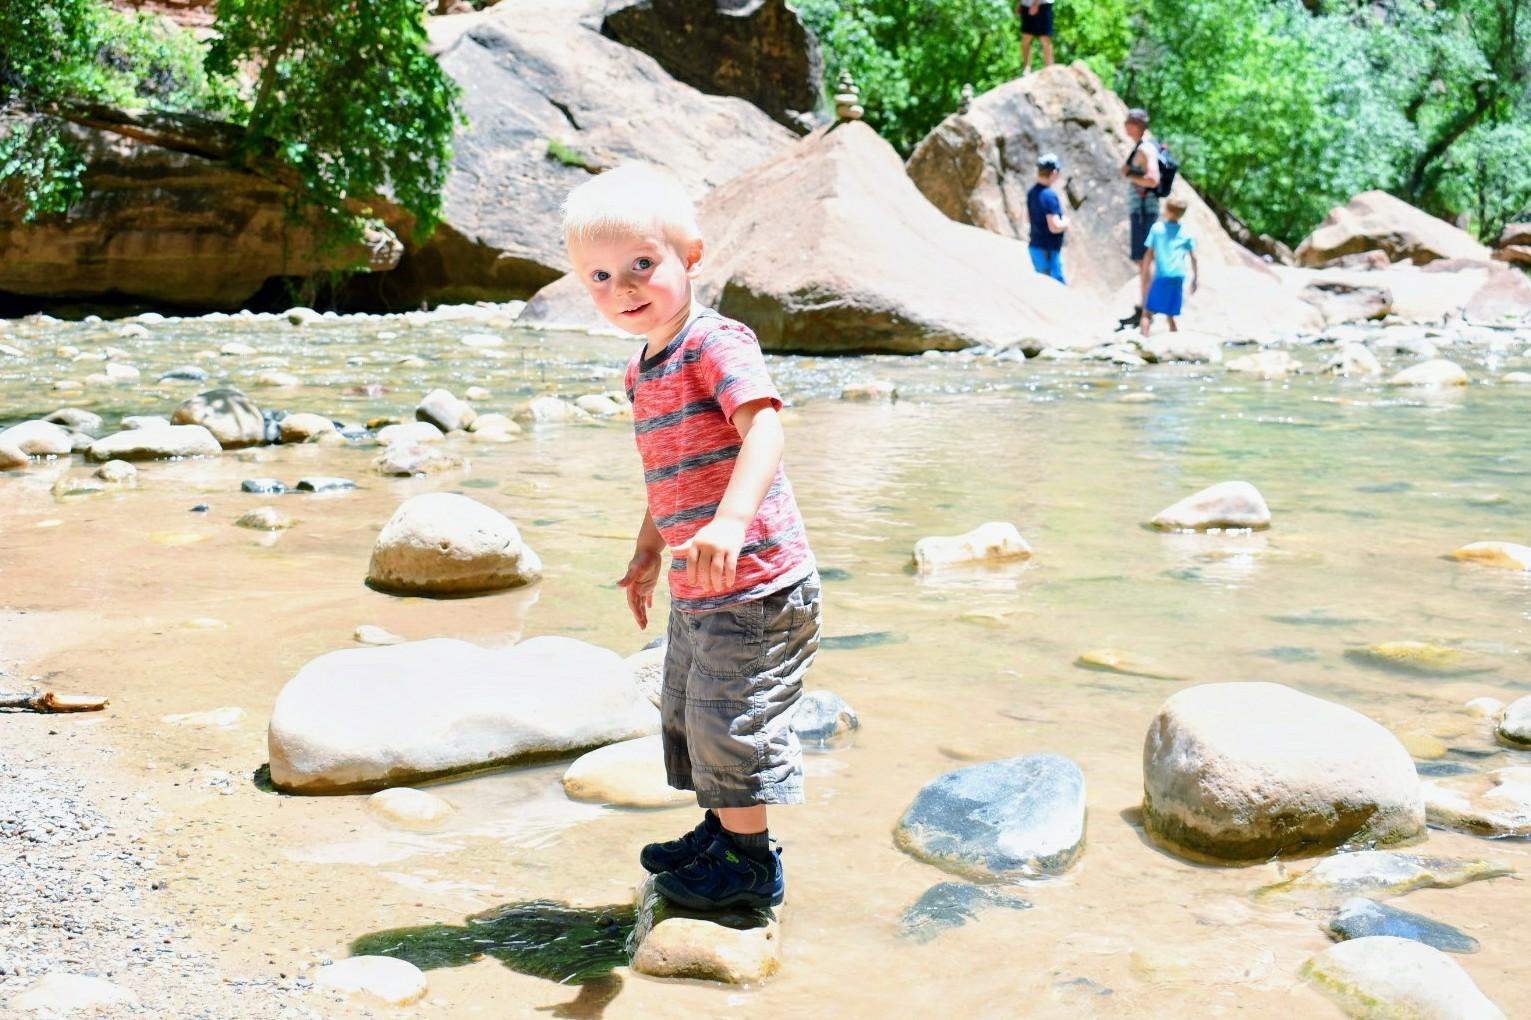 The Zion Canyon hike is easy for families to do with kids